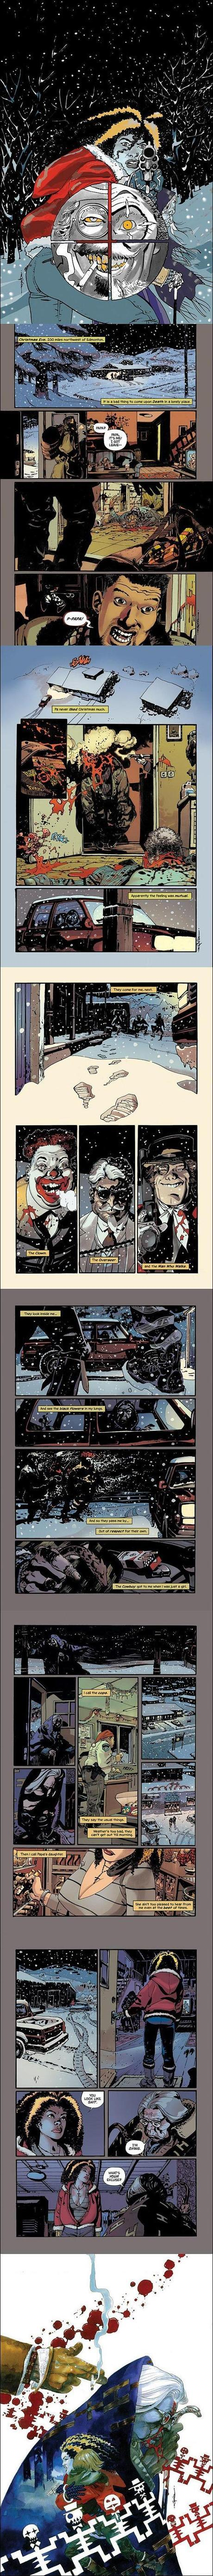 Grindhouse: Drive In, Bleed Out #1 Preview